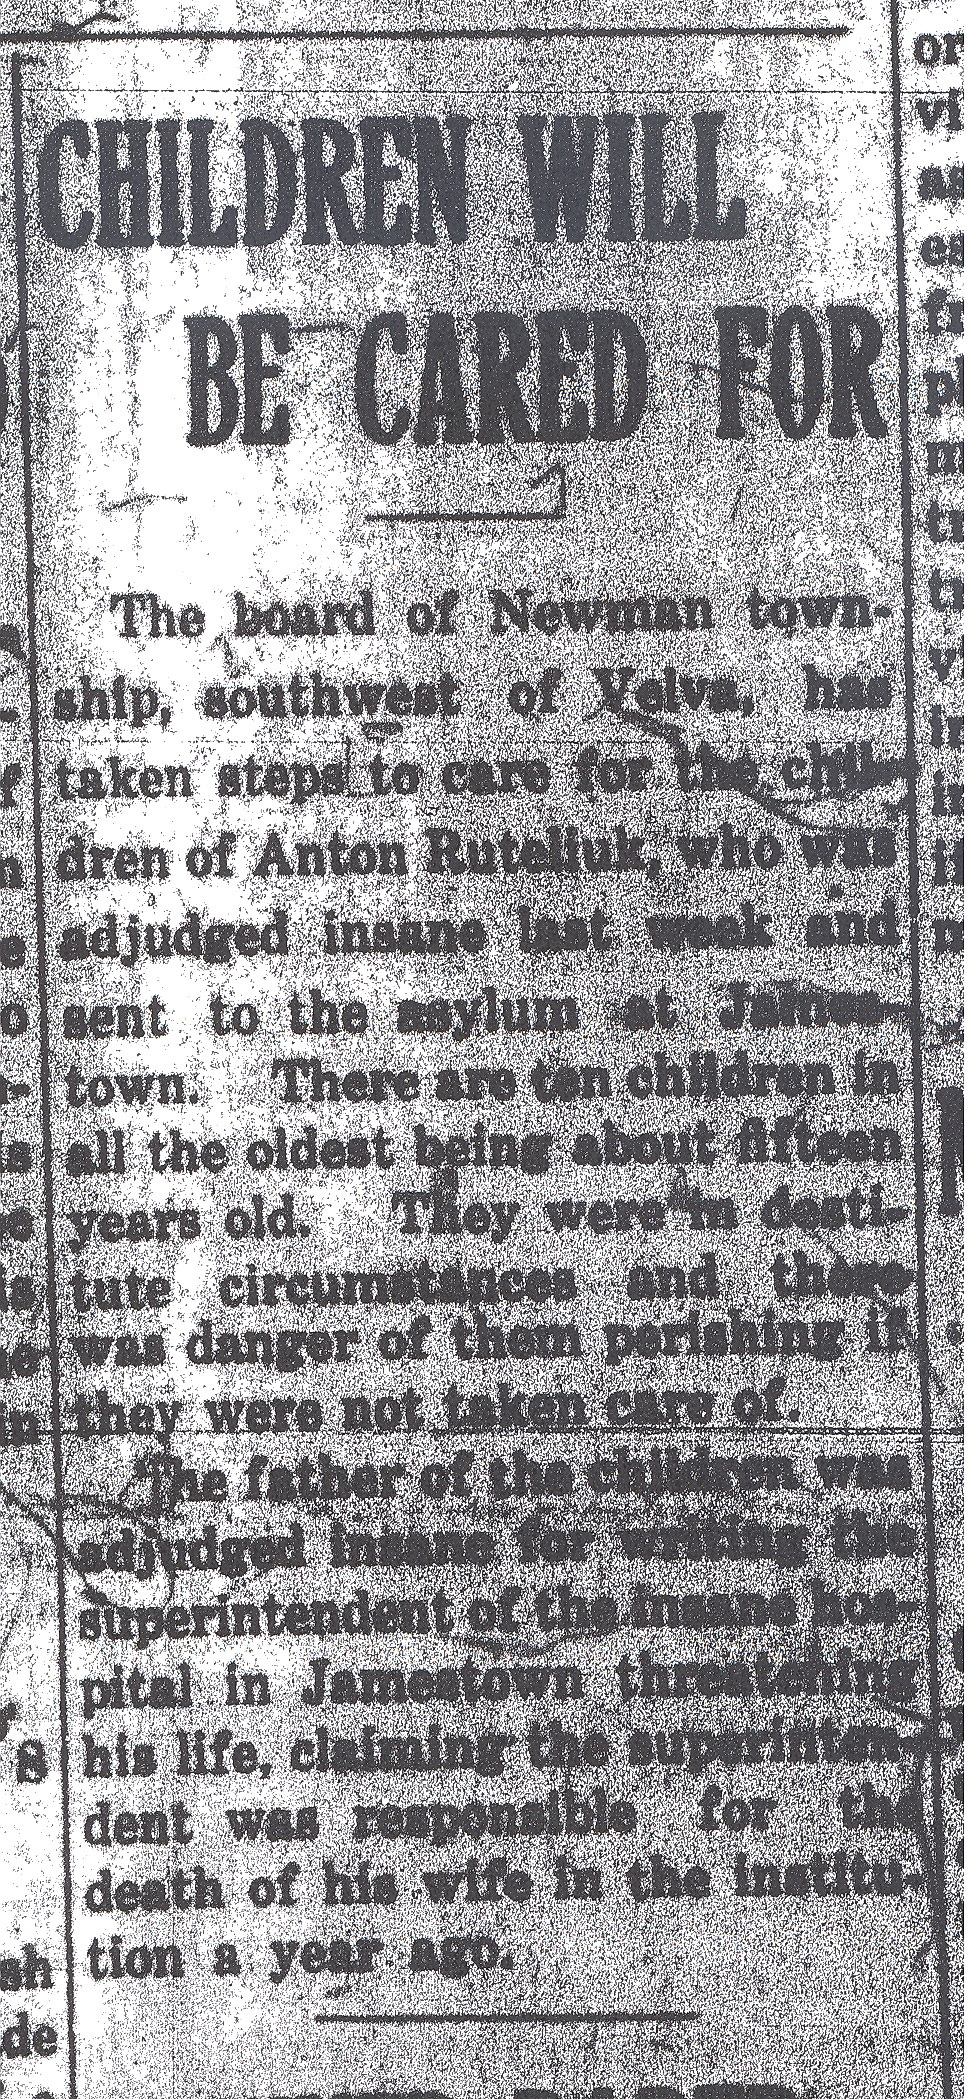 News clipping - Children will be cared for